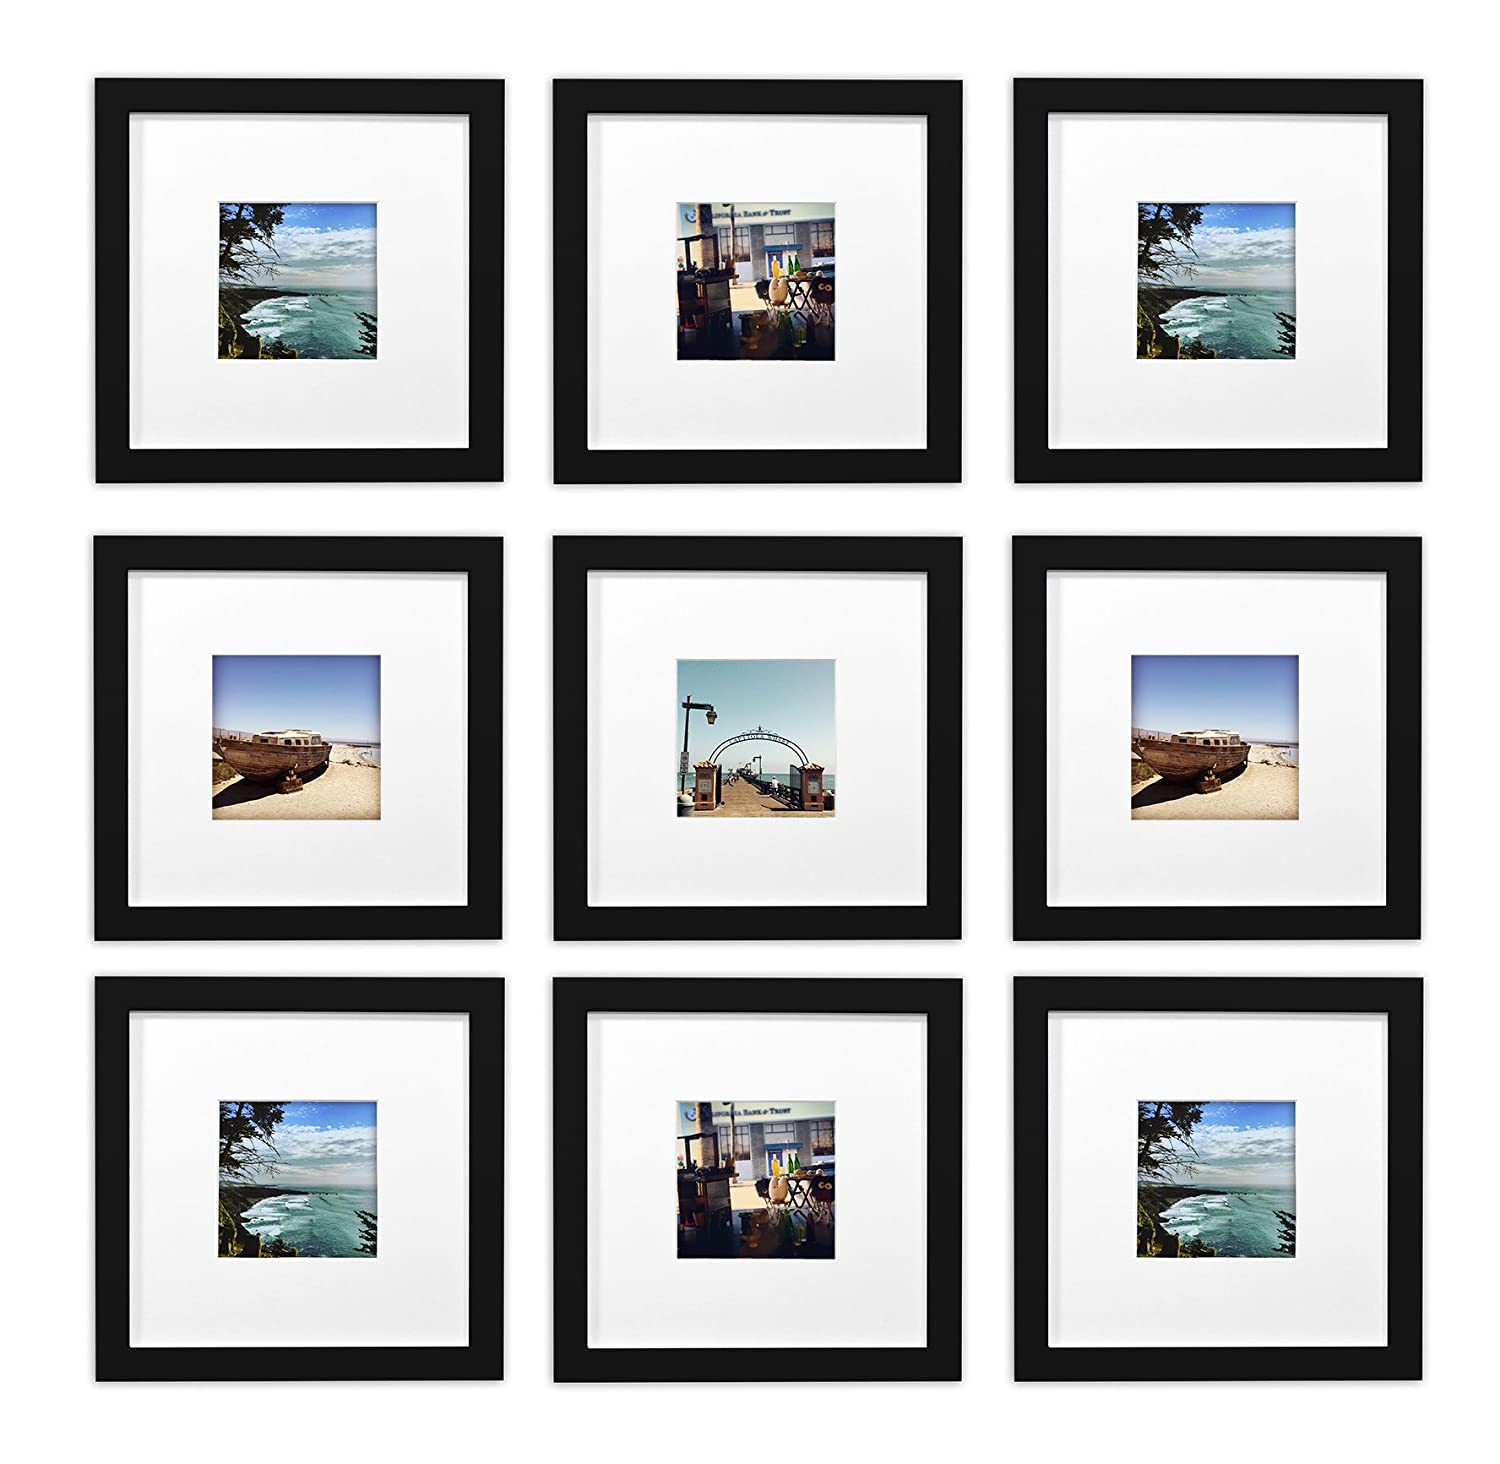 Black 9 golden State Art, Smartphone Instagram Frames Collection,Set of 9, 8x8-inch Square Photo Wood Frames White Photo Mat & Real Glass 4x4 Photo, Black